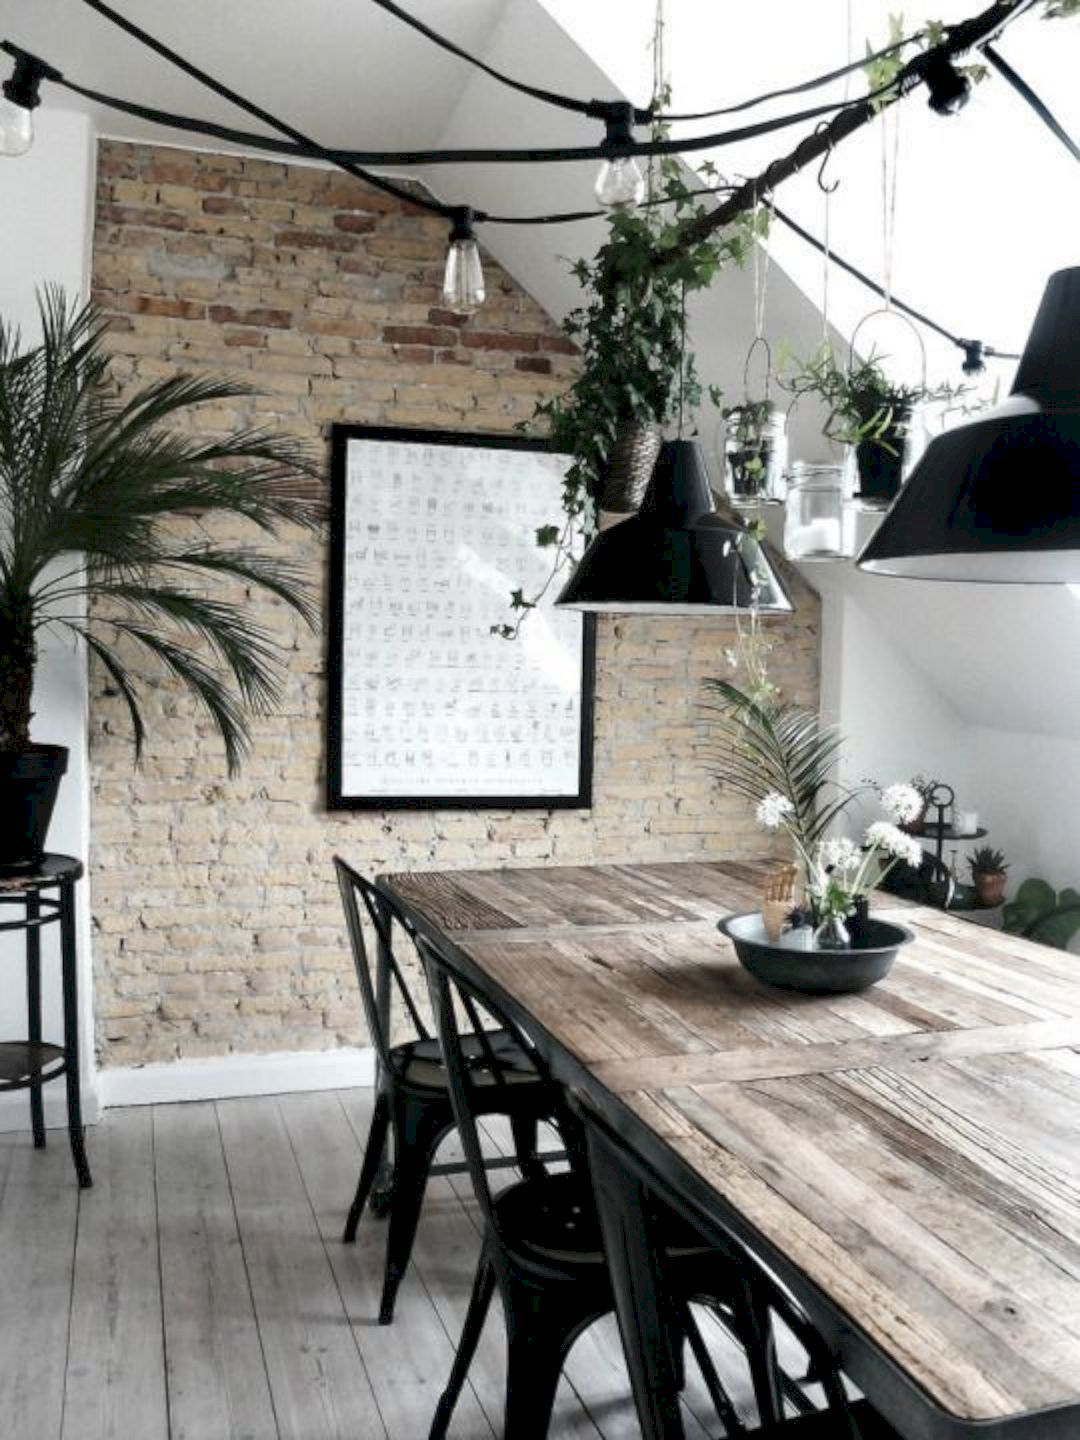 Charmant 16 Ideas To Bring Out A Rustic Interior Design At Home  Https://www.futuristarchitecture.com/30710 Rustic Interior Design.html